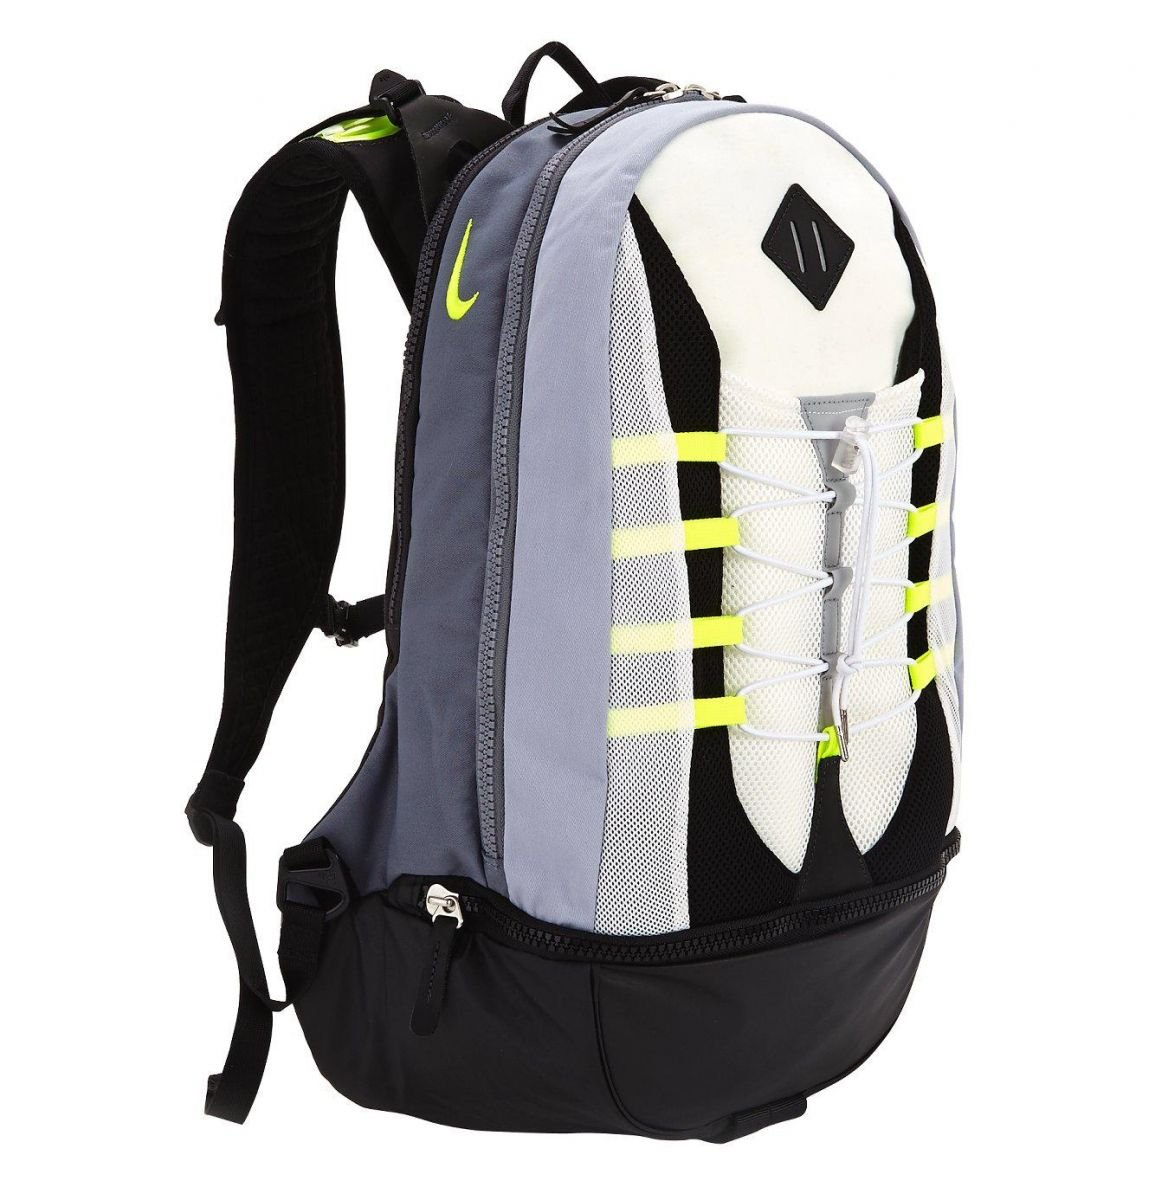 bb5c08b4cf30 Get Quotations · Nike Air Max 95 Pursuit Backpack